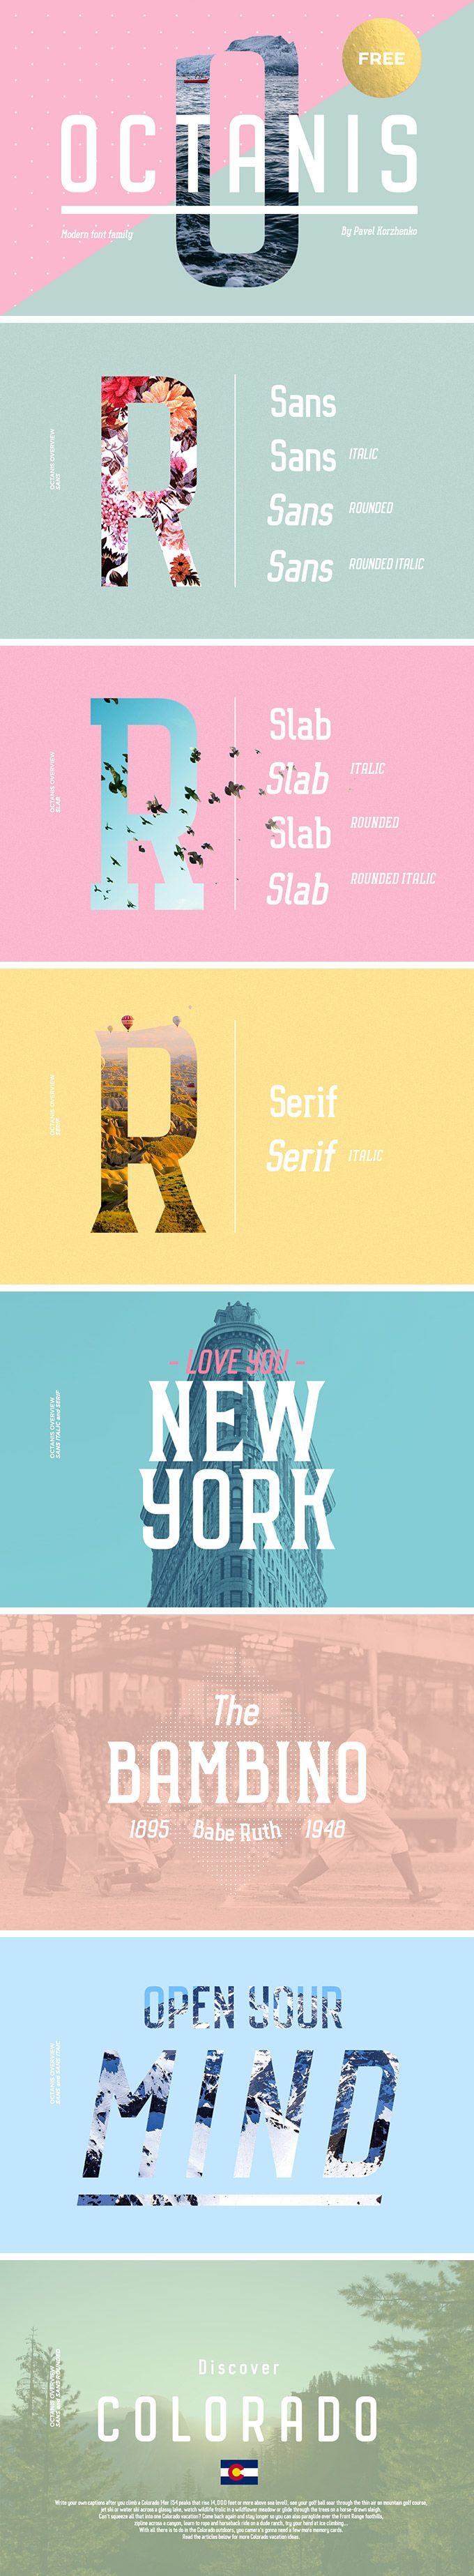 Octanis Font Family - download freebie by PixelBuddha